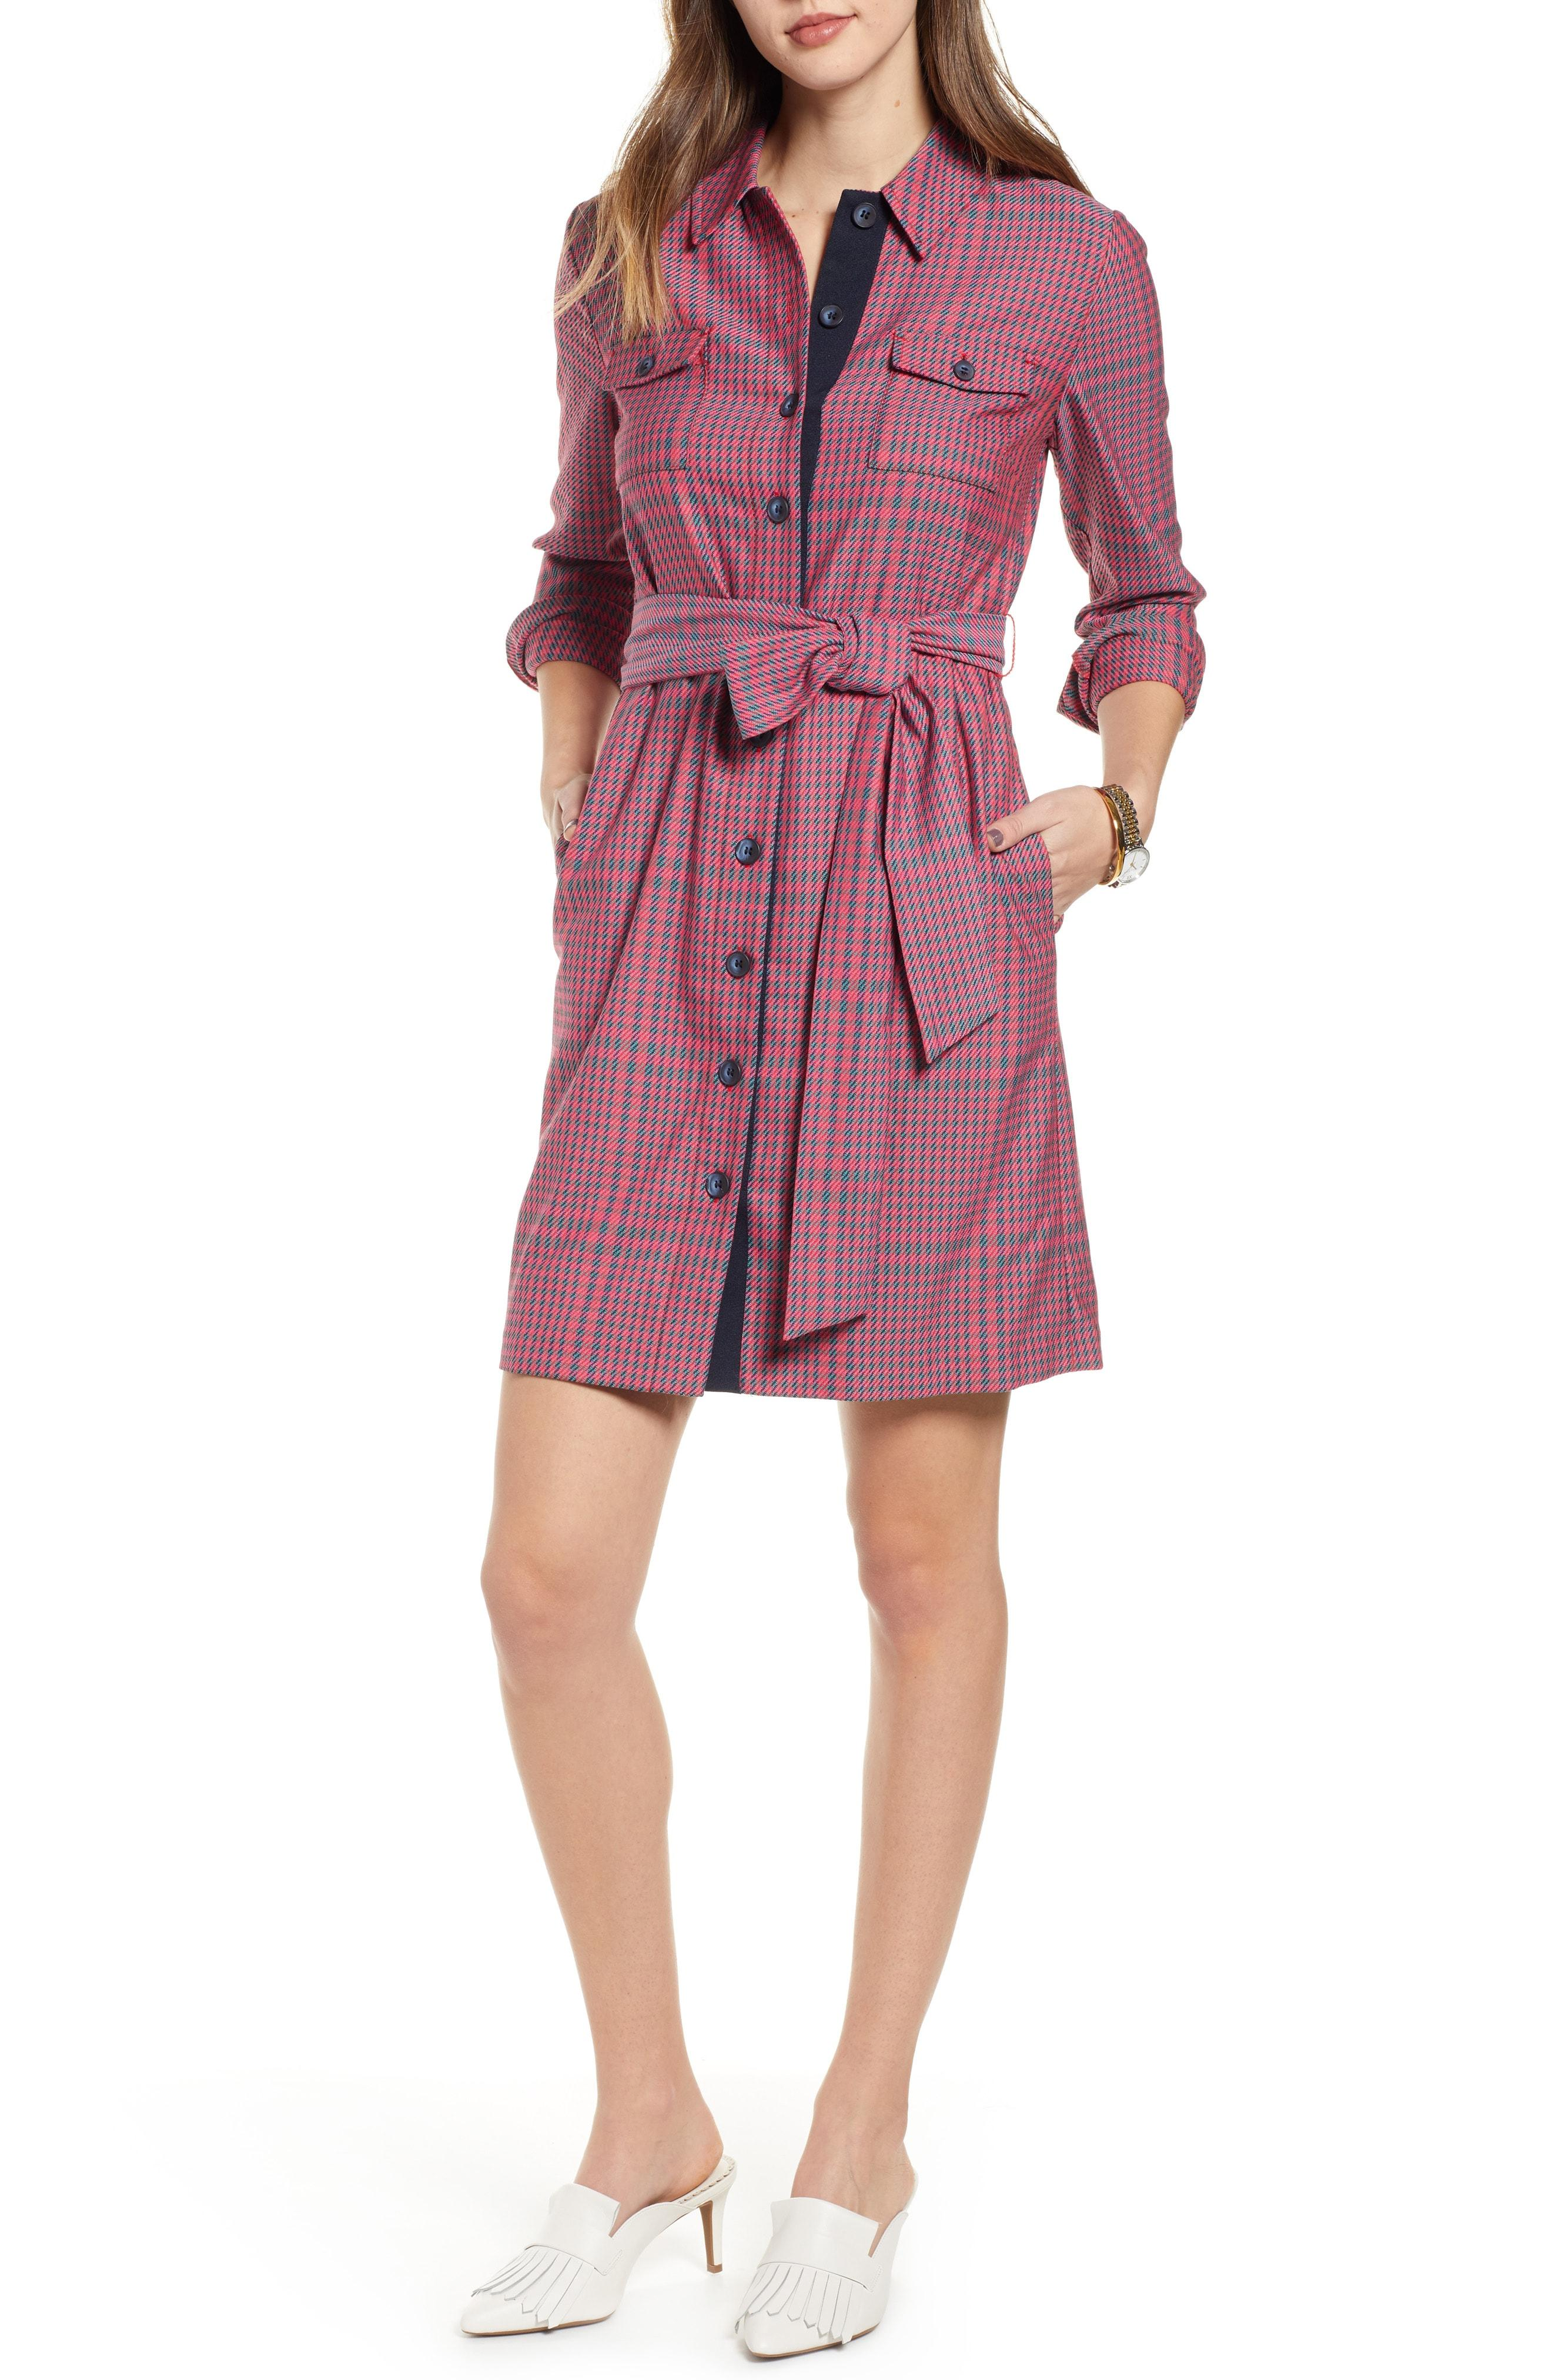 404019e92aed Lyst - Nordstrom 1901 Belted Utility Dress